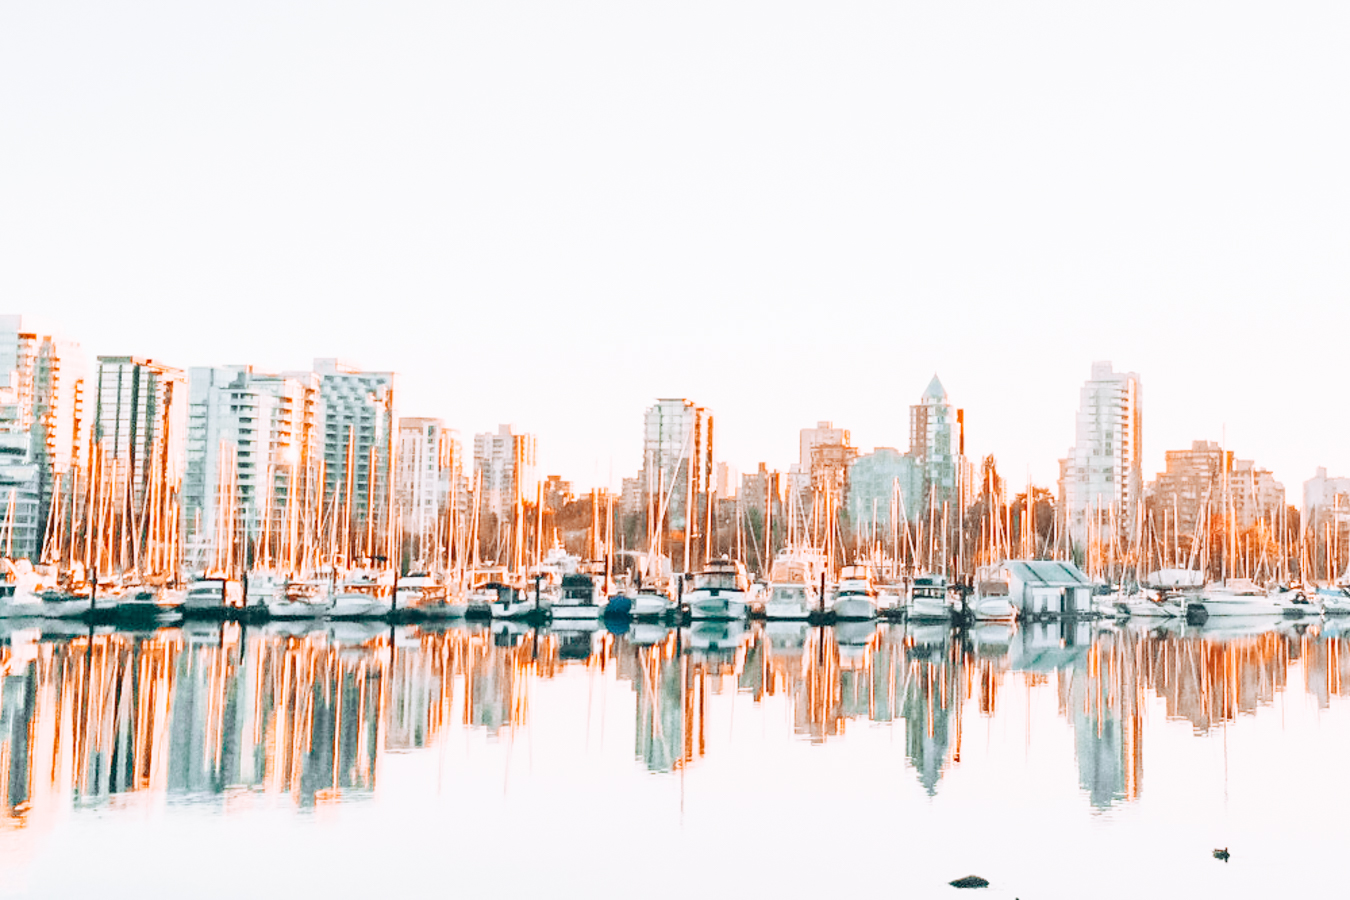 A view of boats and buildings in Vancouver